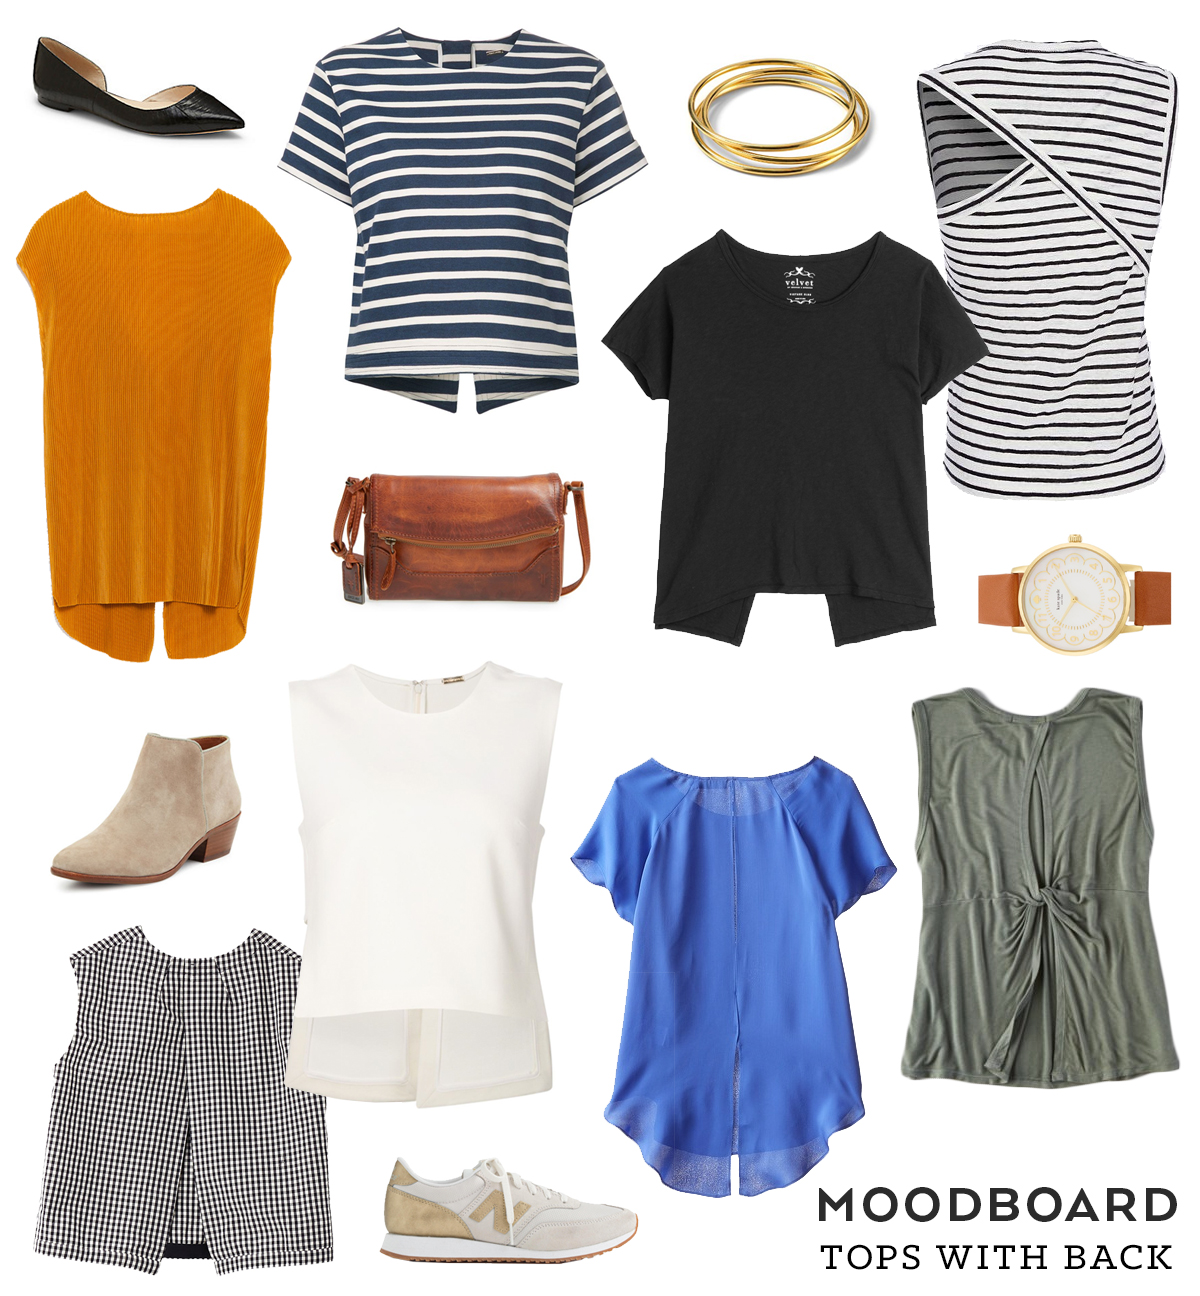 Moodboard – Tops With Back | Sew DIY